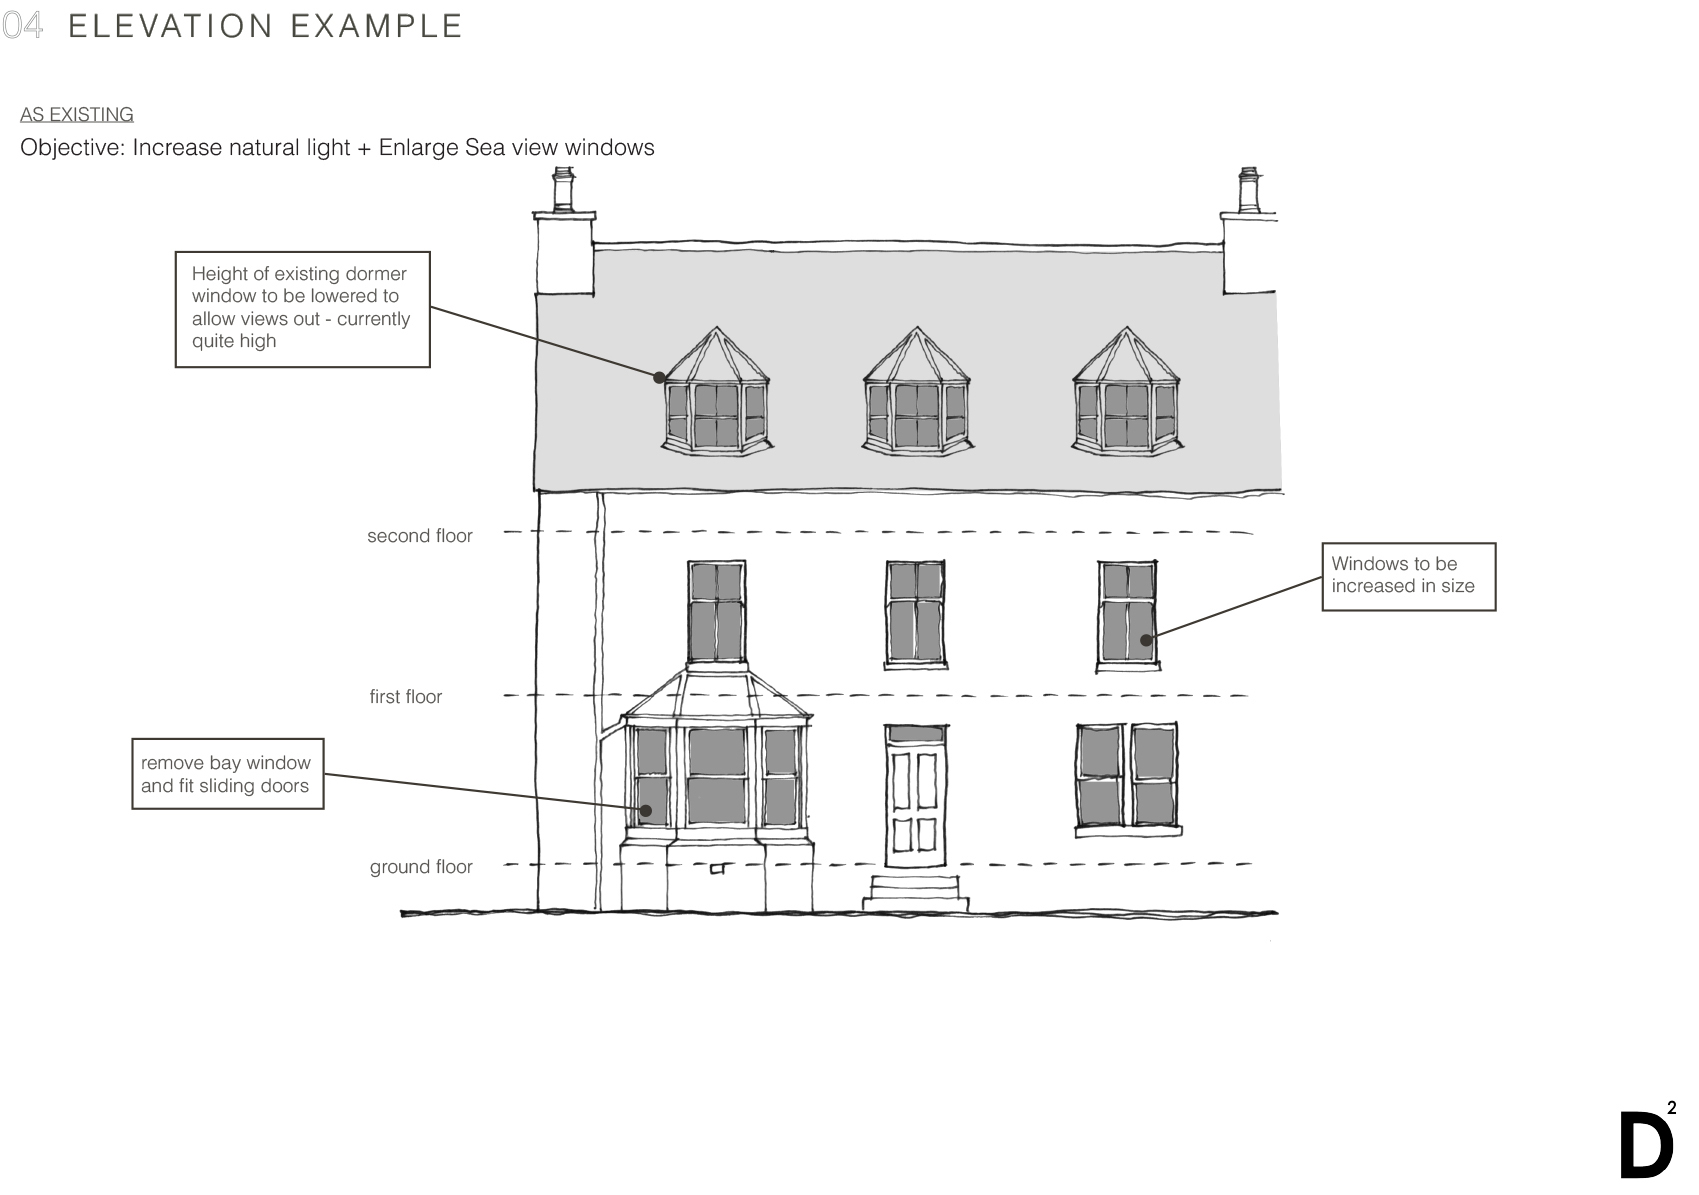 18102_Outline Design Document_Pier Hotel_Broadford-5.jpg